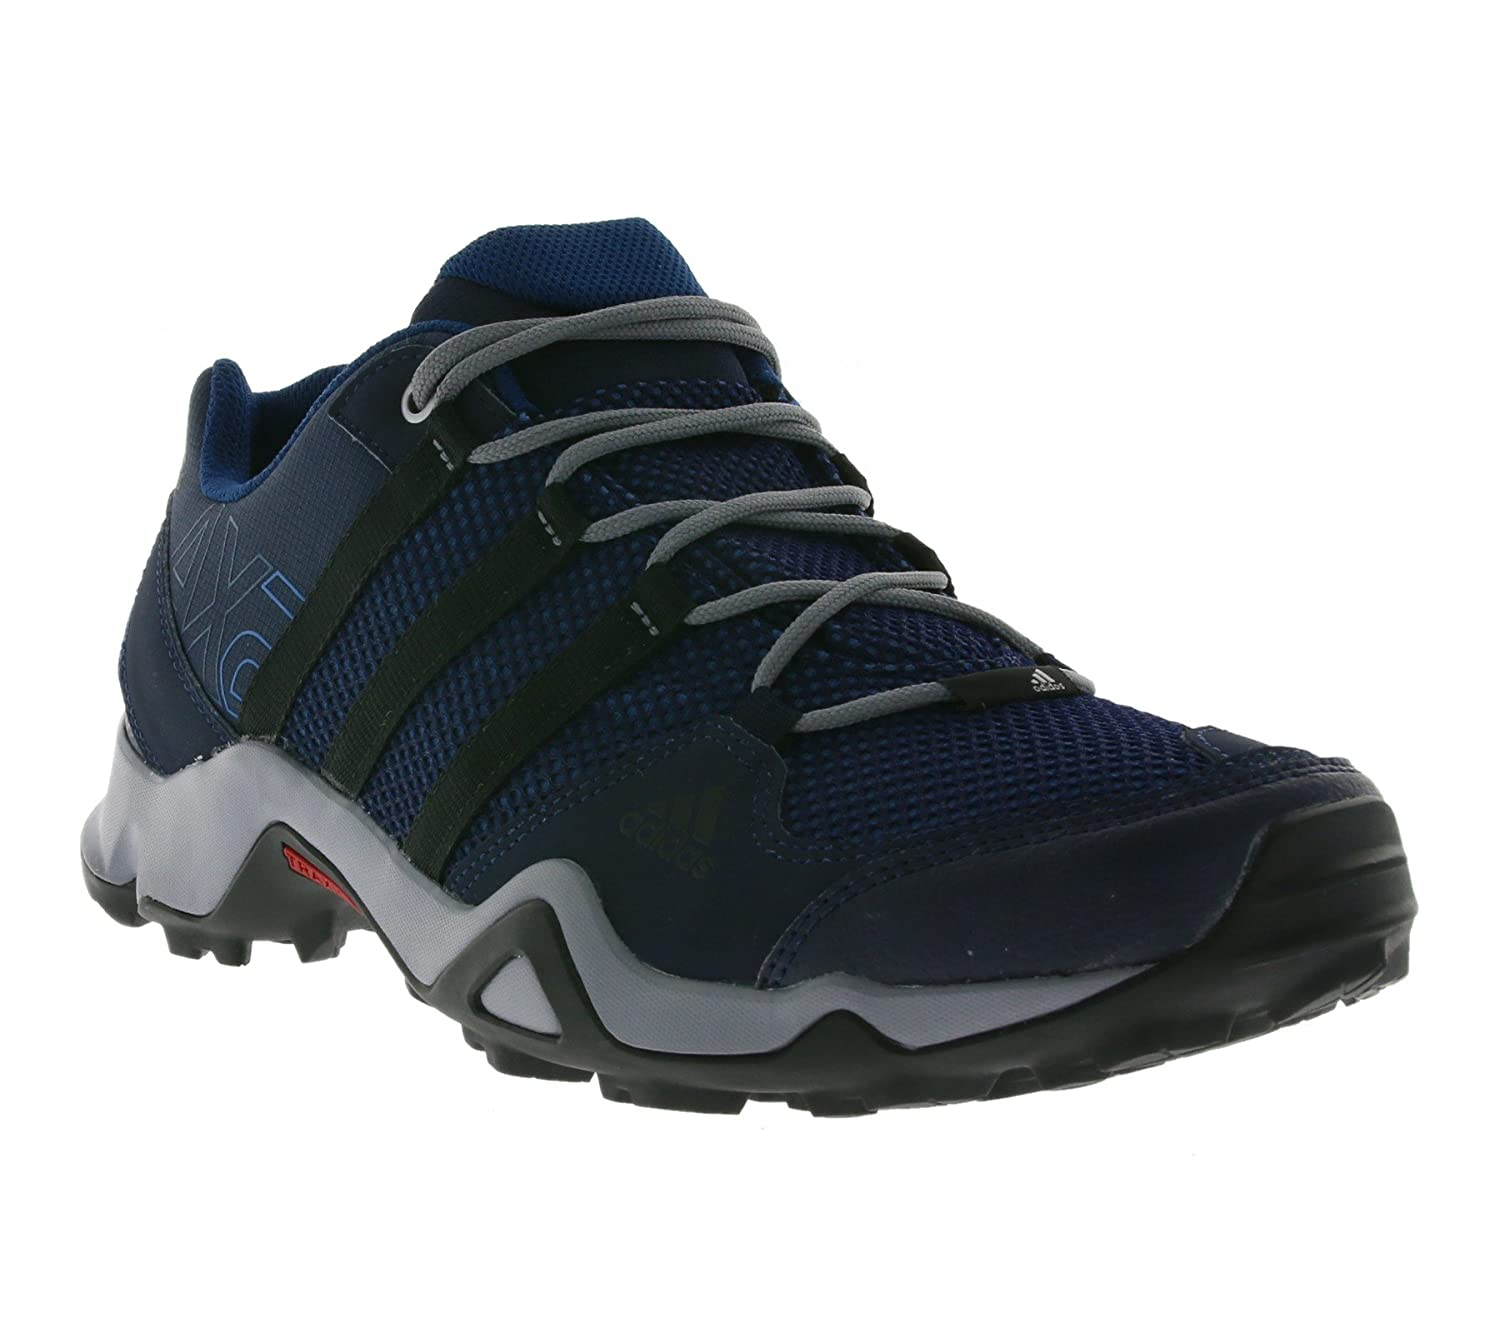 02f498525e8 adidas AX2 - Outdoor - Trainers for Men